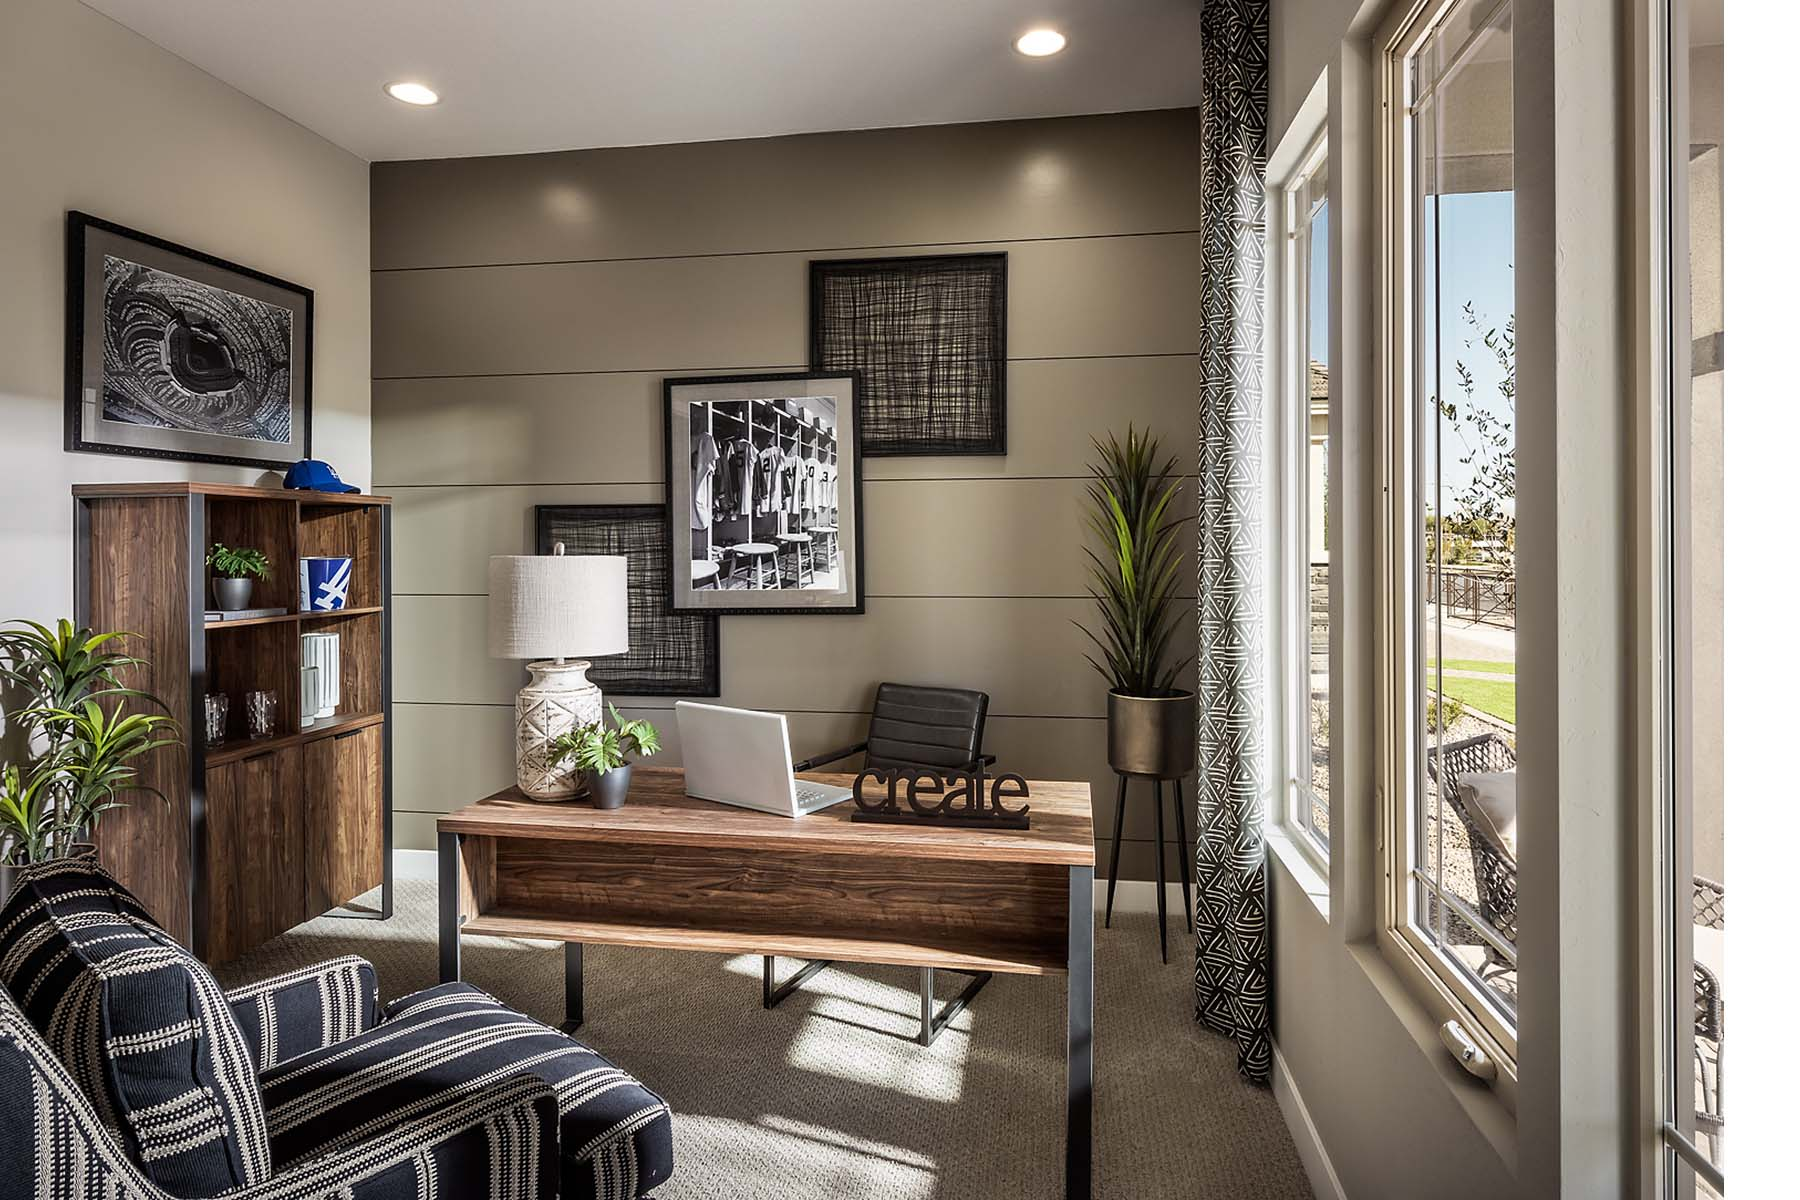 Bellwood Plan Study Room at Vista Diamante at Camelback Ranch in Phoenix Arizona by Mattamy Homes